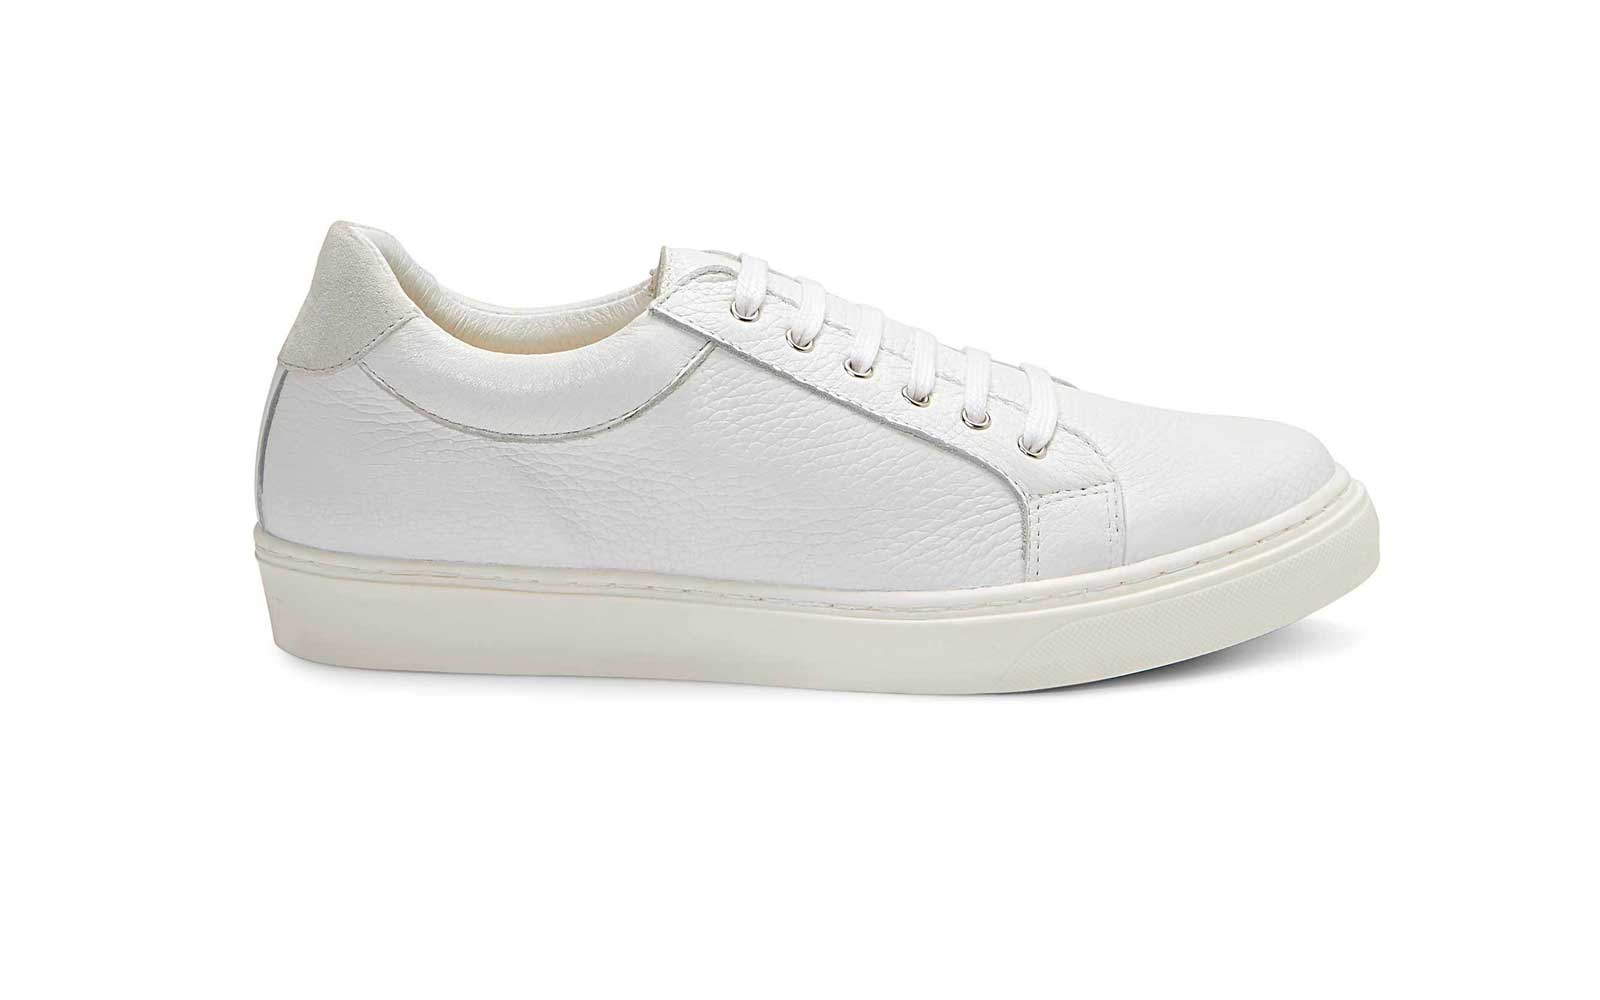 Sarah Flint Perfect White Sneaker